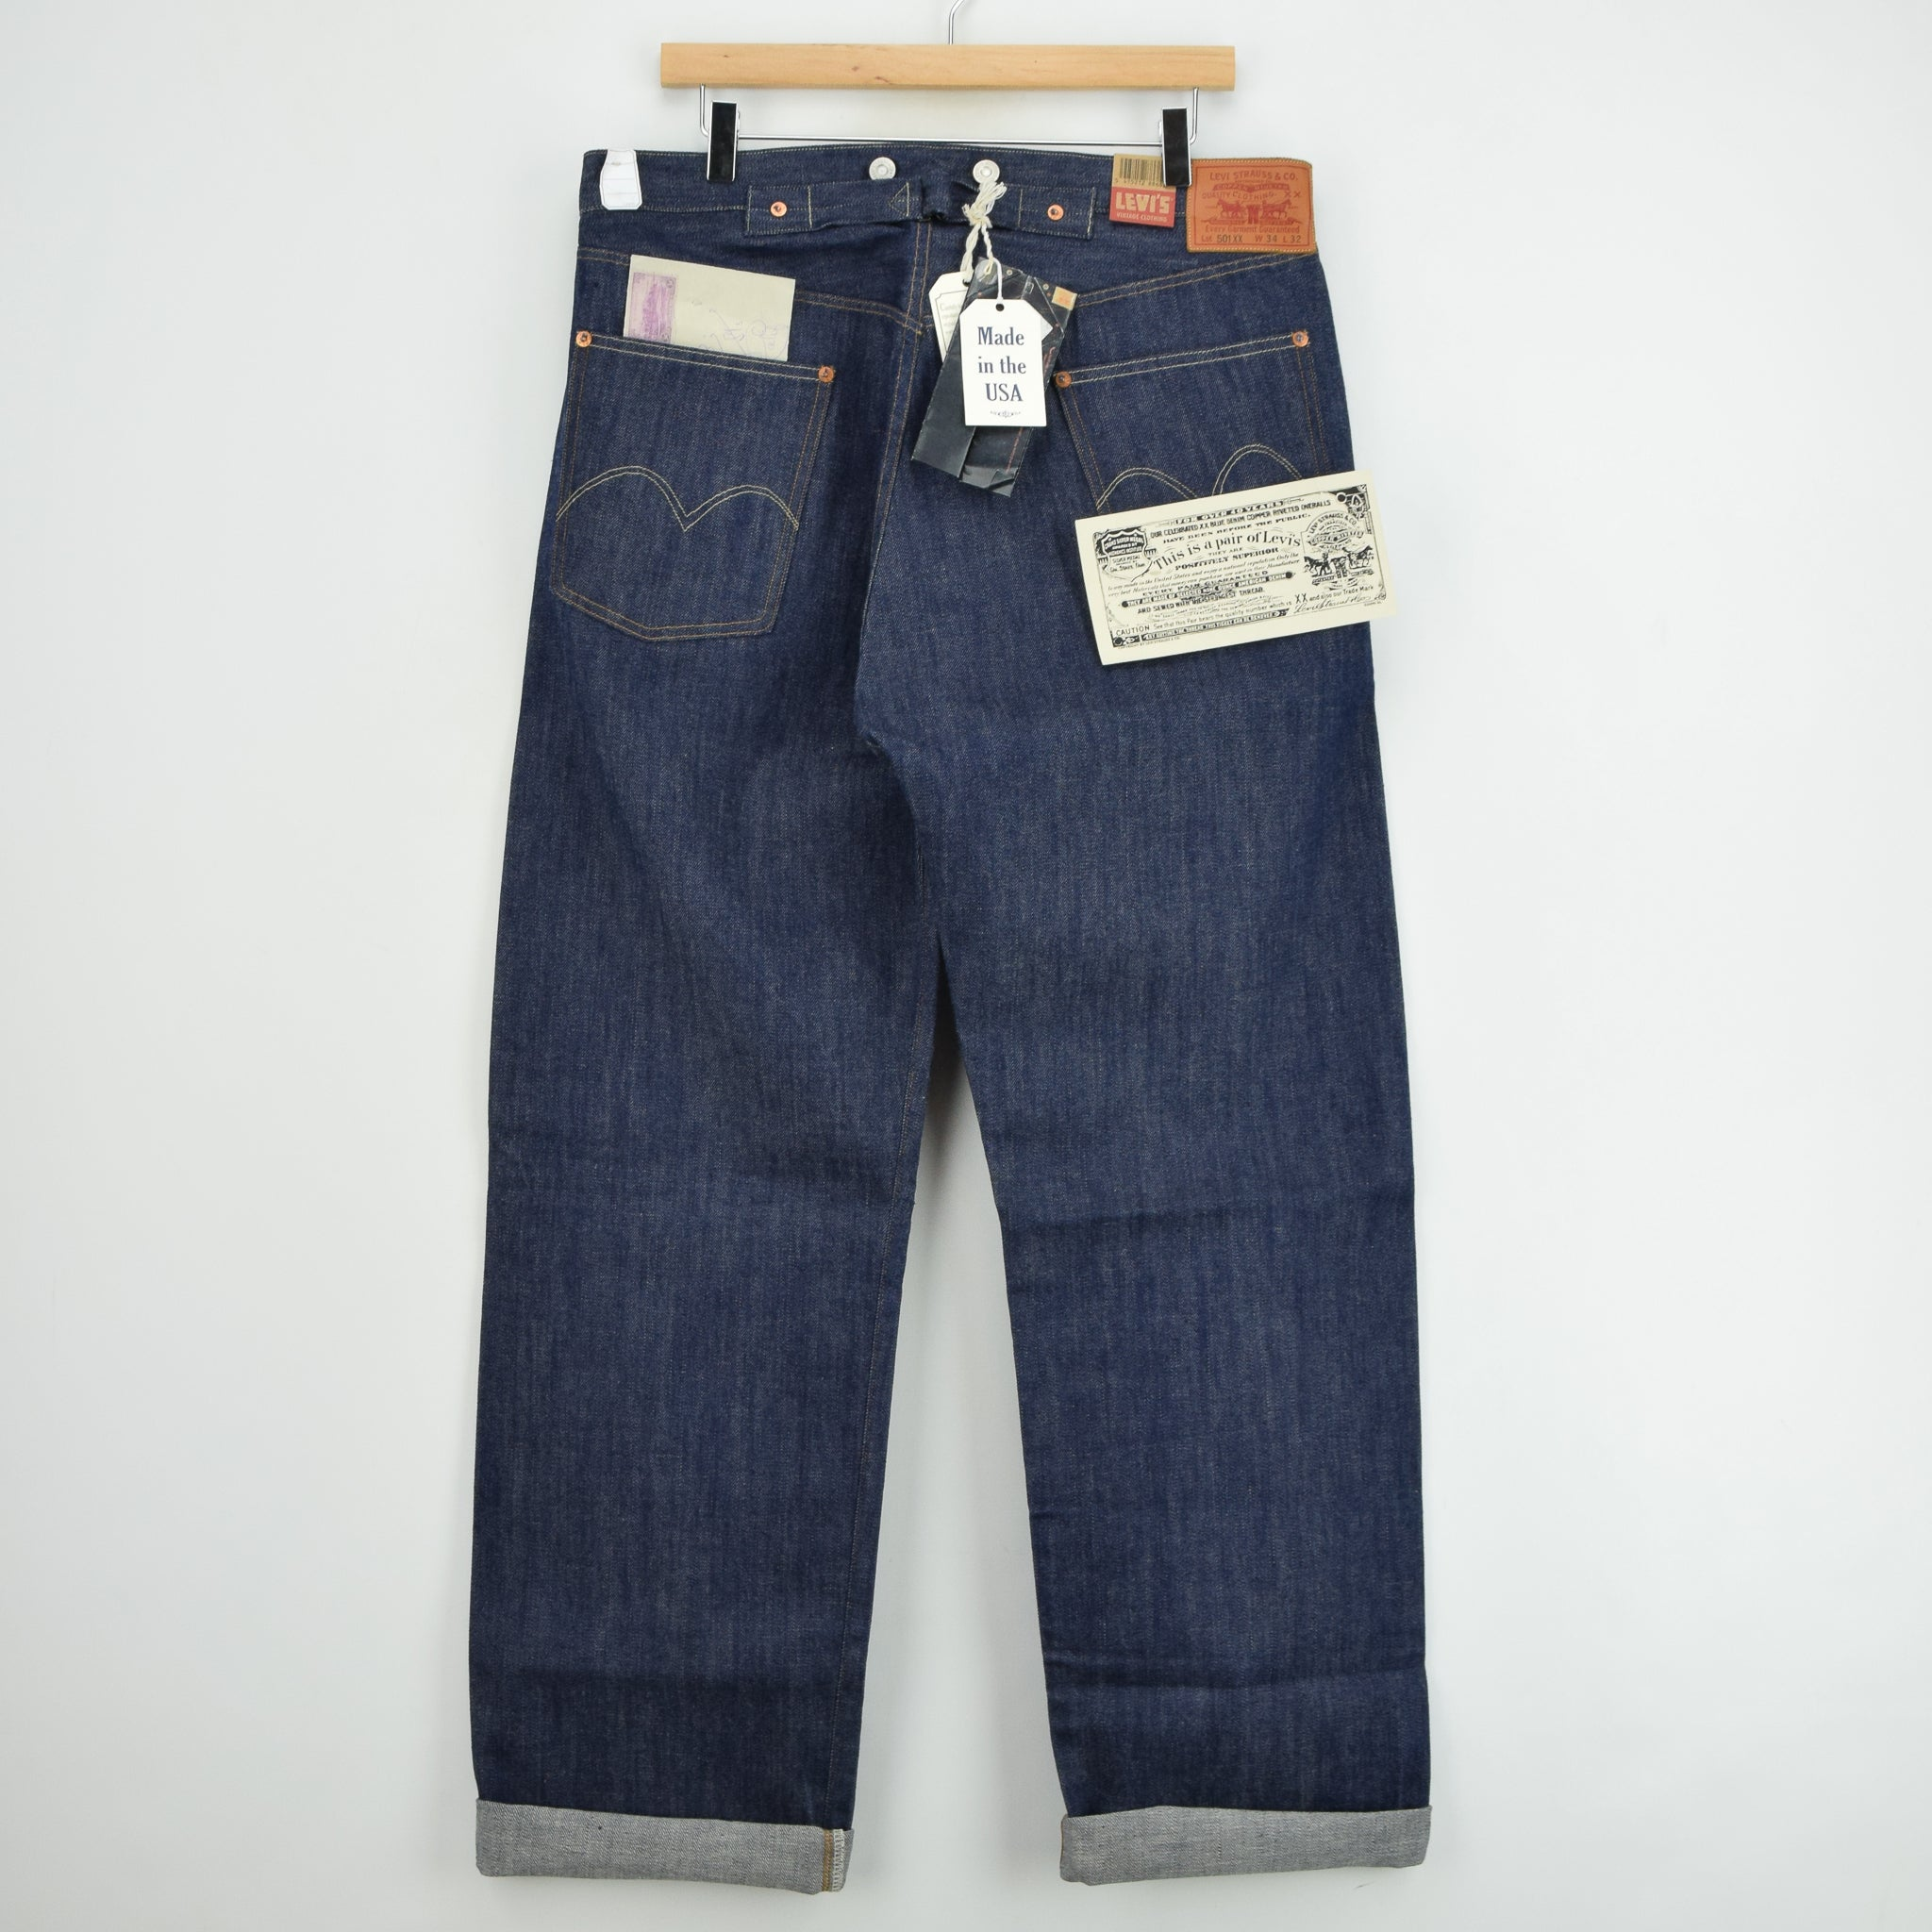 LVC Levi's Vintage Clothing 501 xx 1915 Shrink to Fit Selvedge Jeans 34 W 32 L back